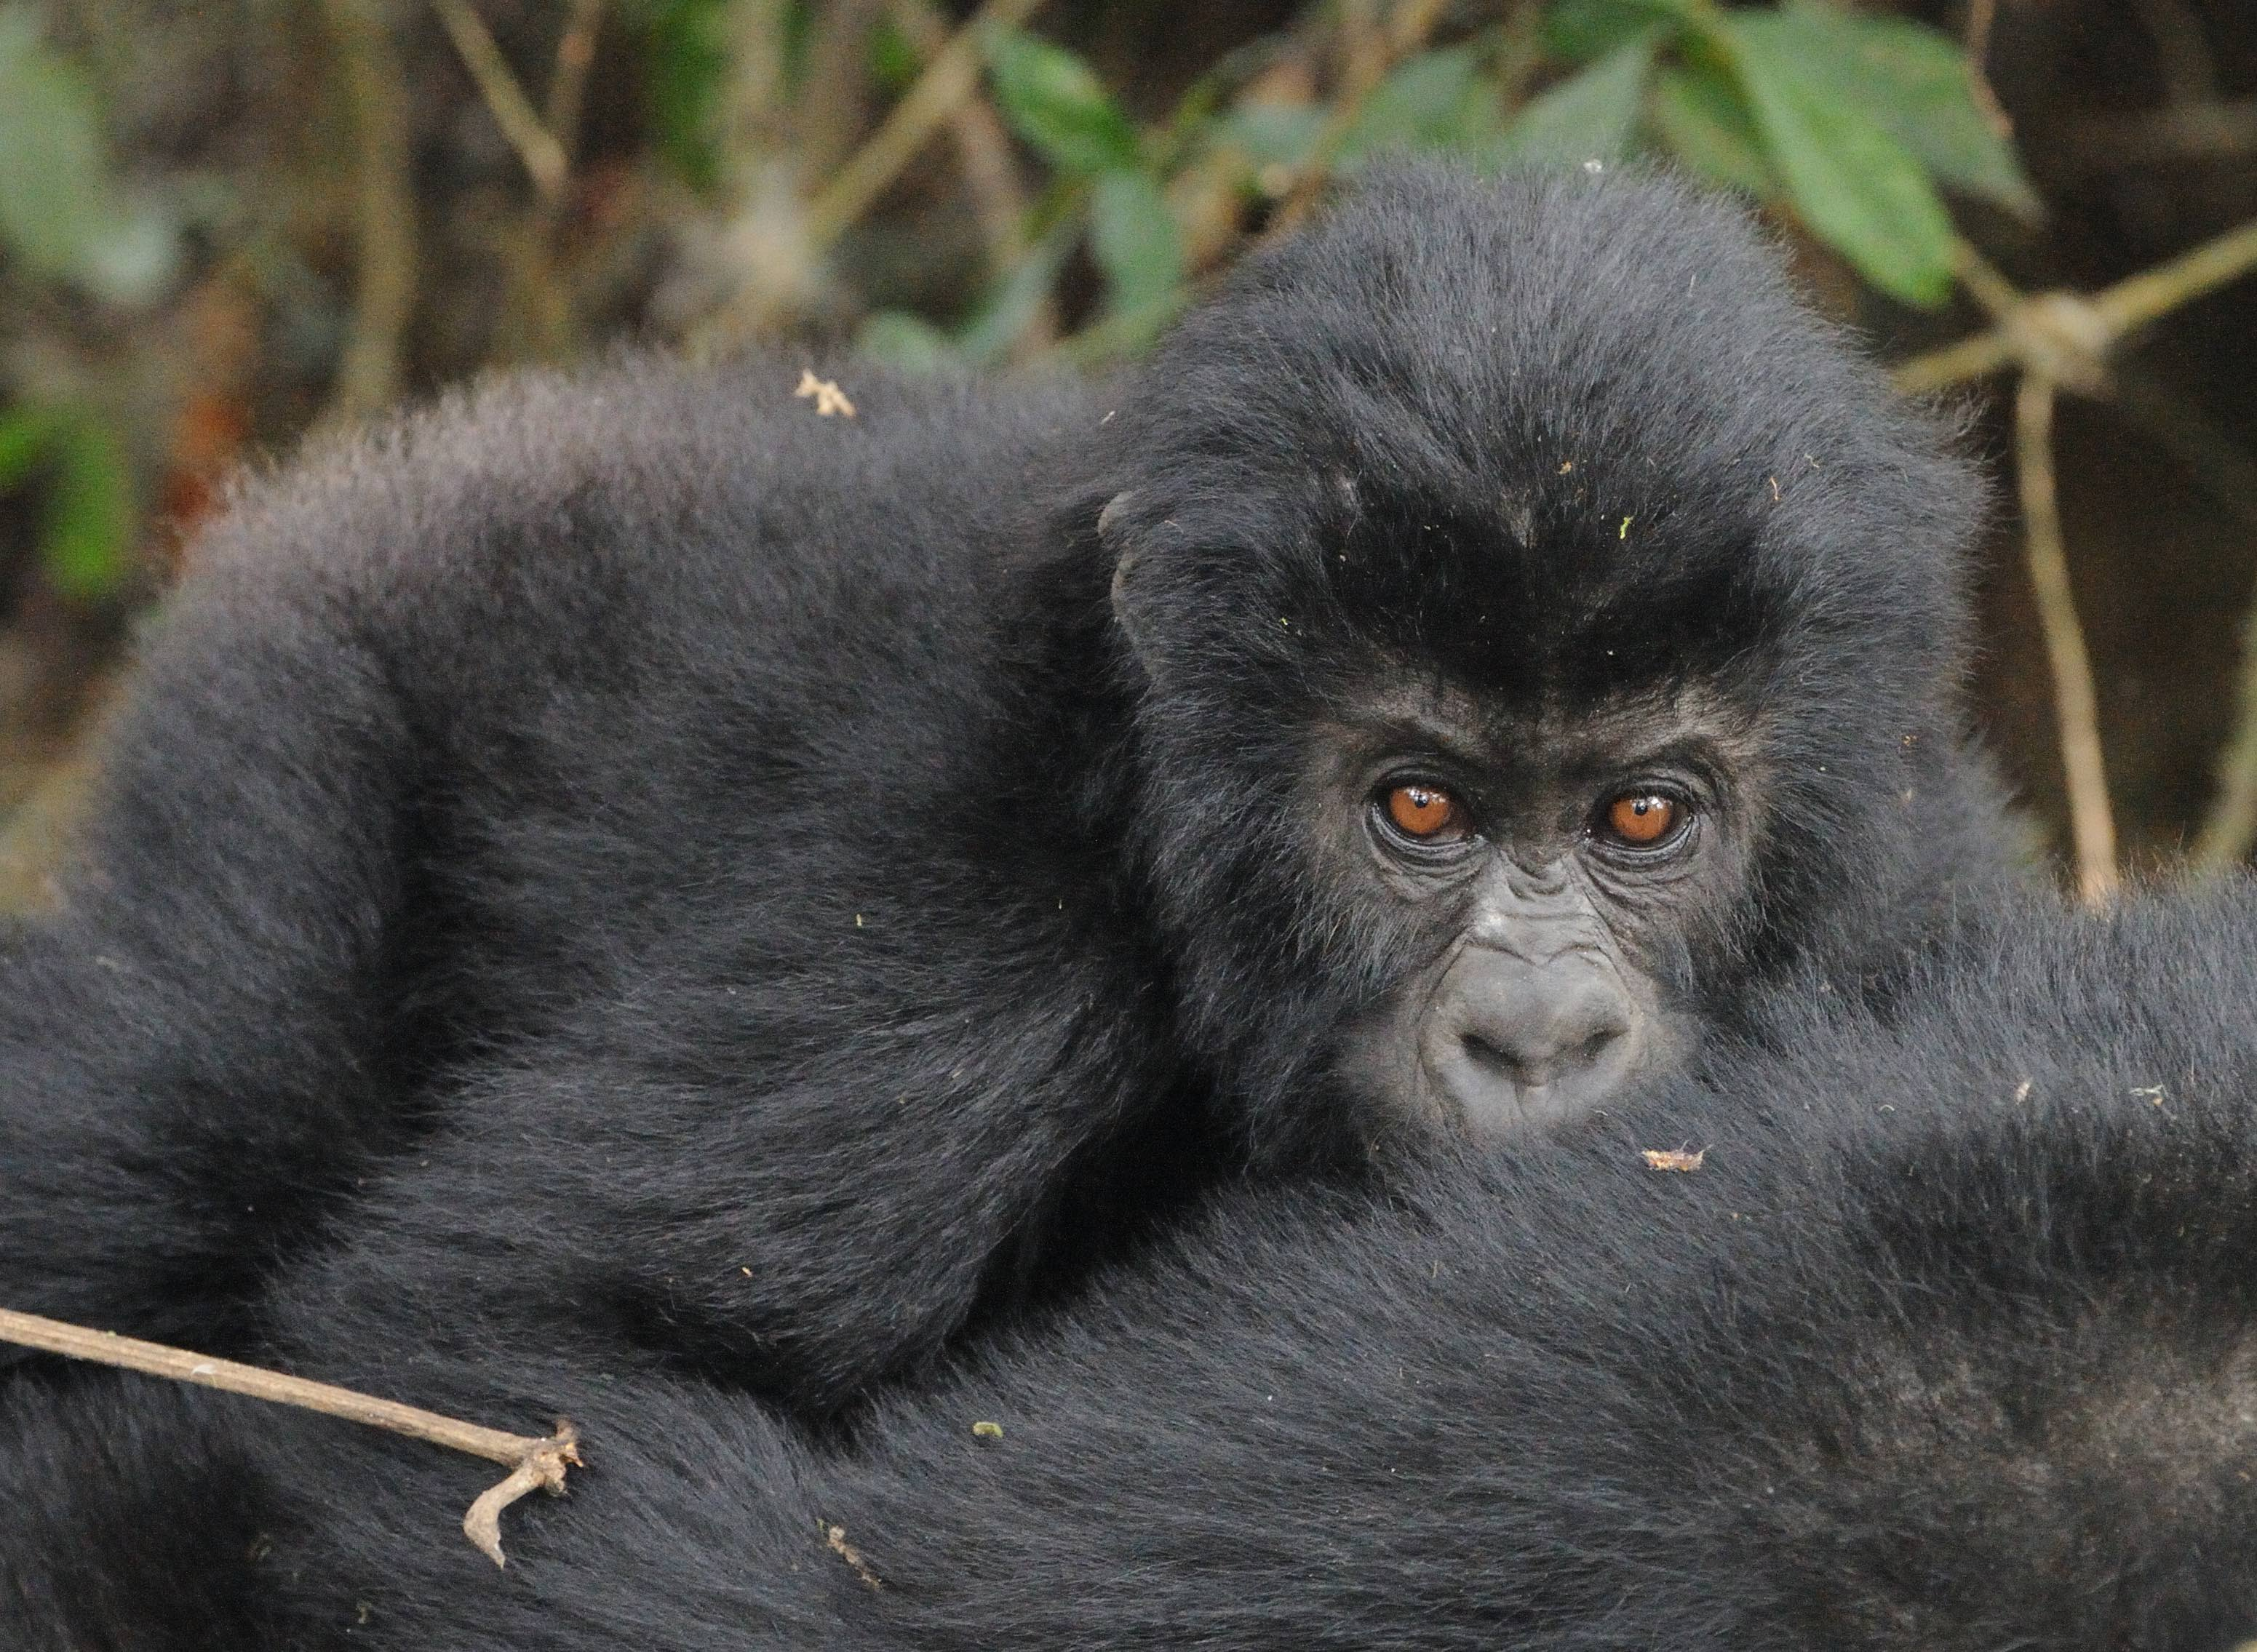 The Itombwe reserve is a critical conservation area for the Gruaer's gorilla, largest of the great apes. Photo courtesy of WCS.